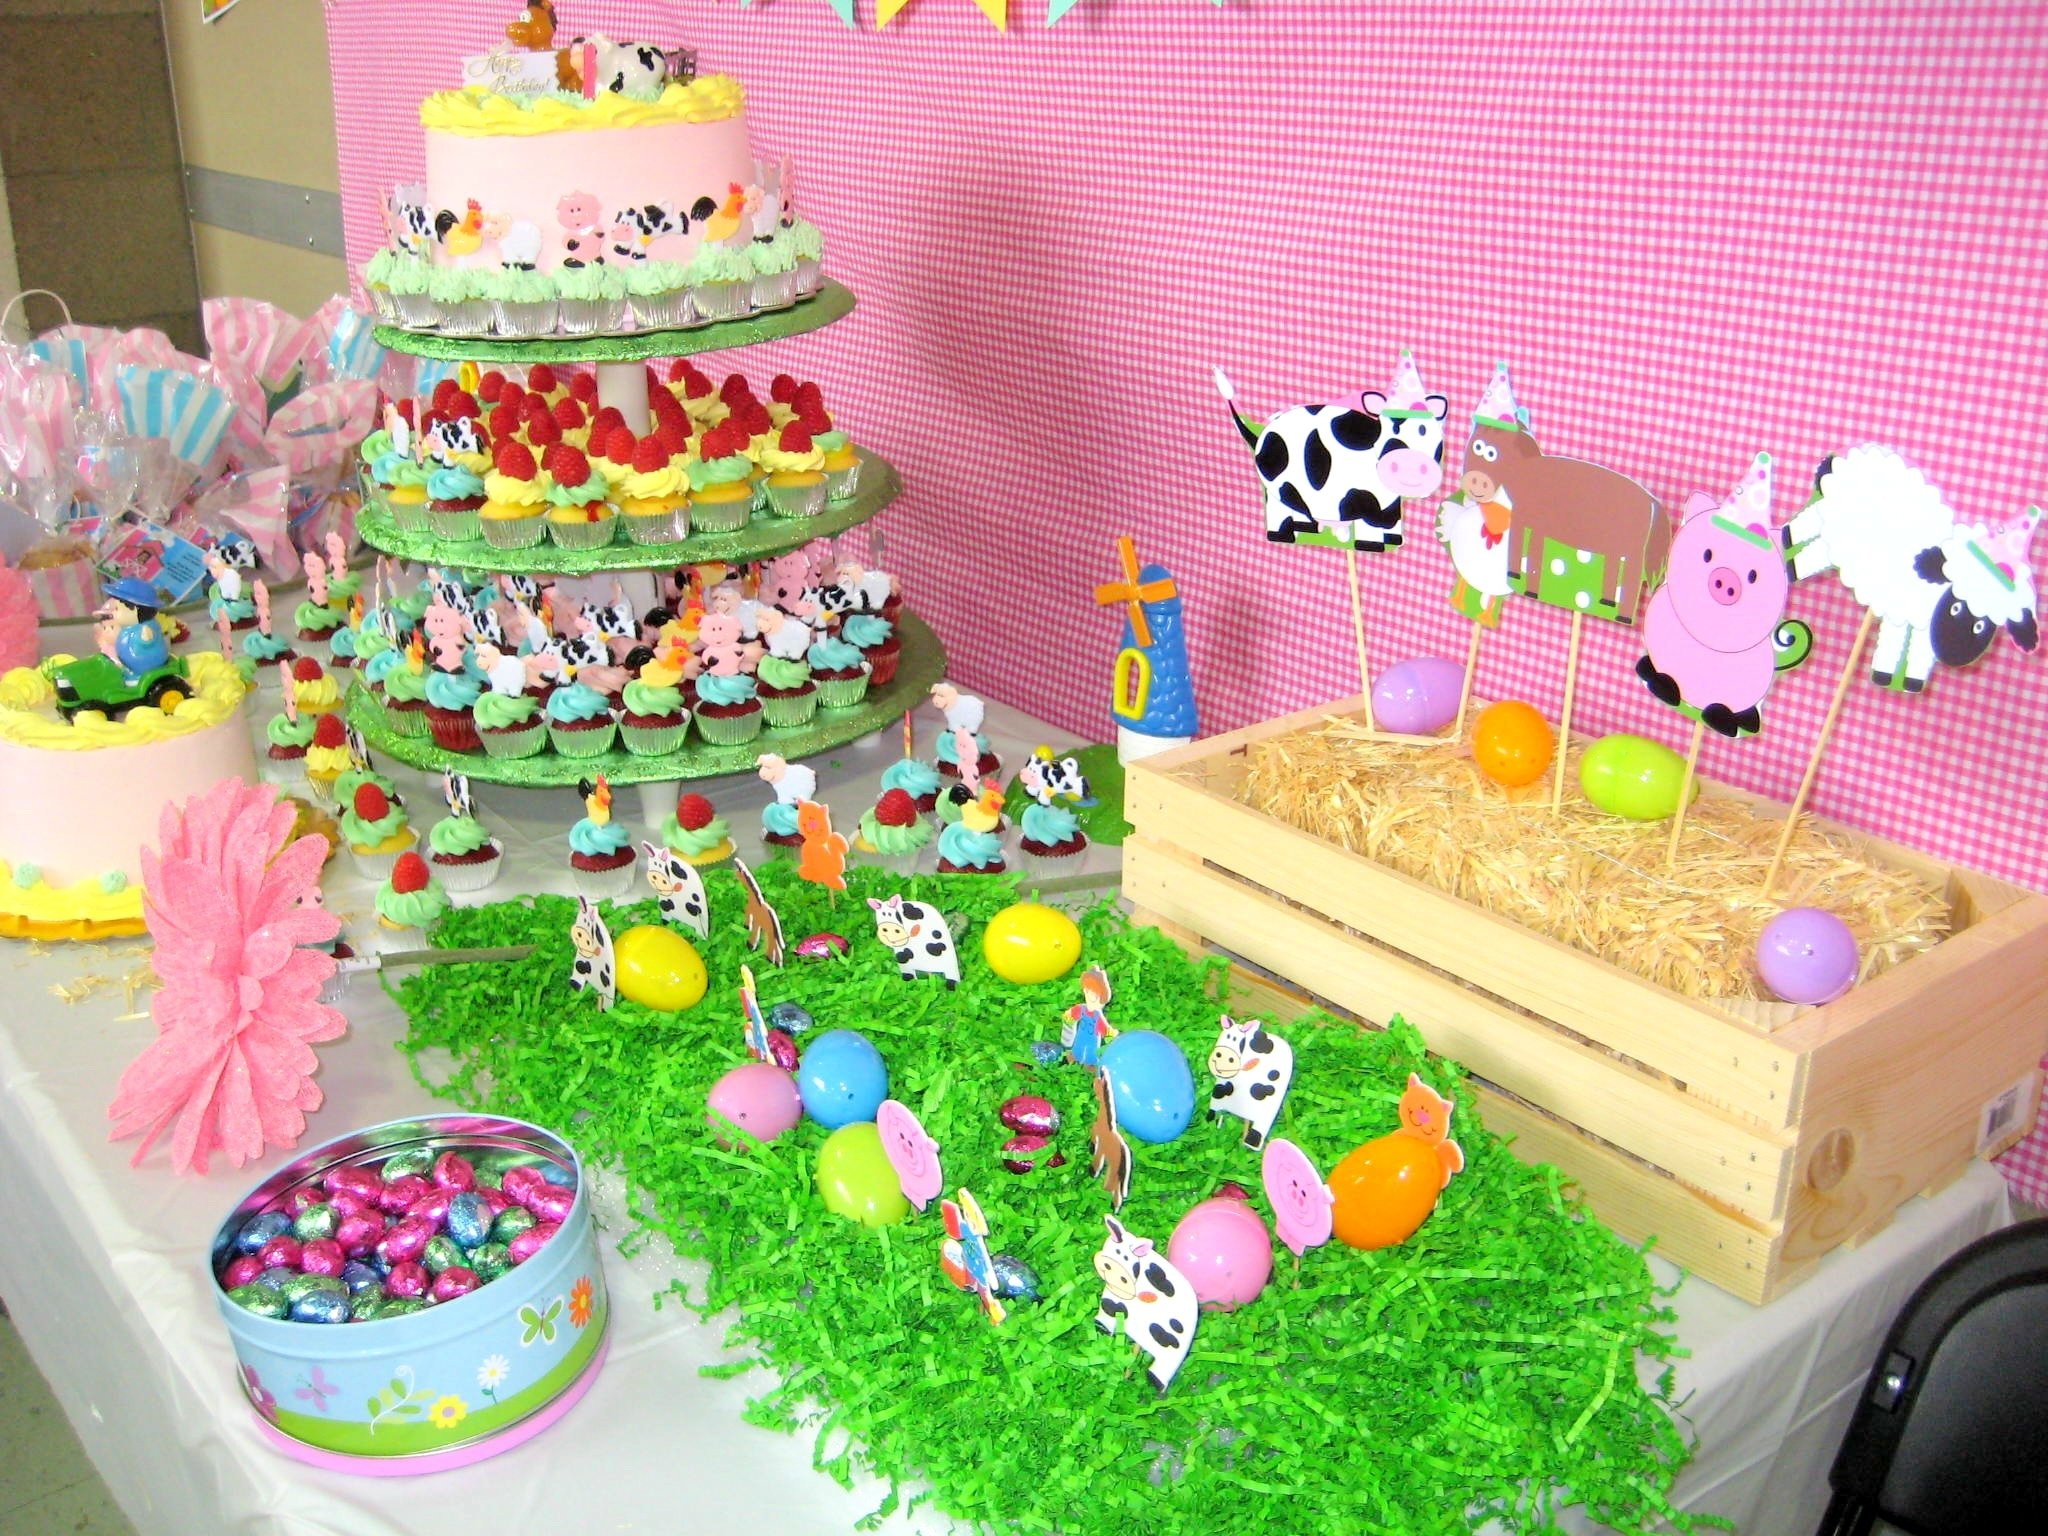 10 Most Recommended Birthday Party Ideas For 10 Year Old Girls themes birthday game ideas for a 10 year old birthday party plus 3 2020